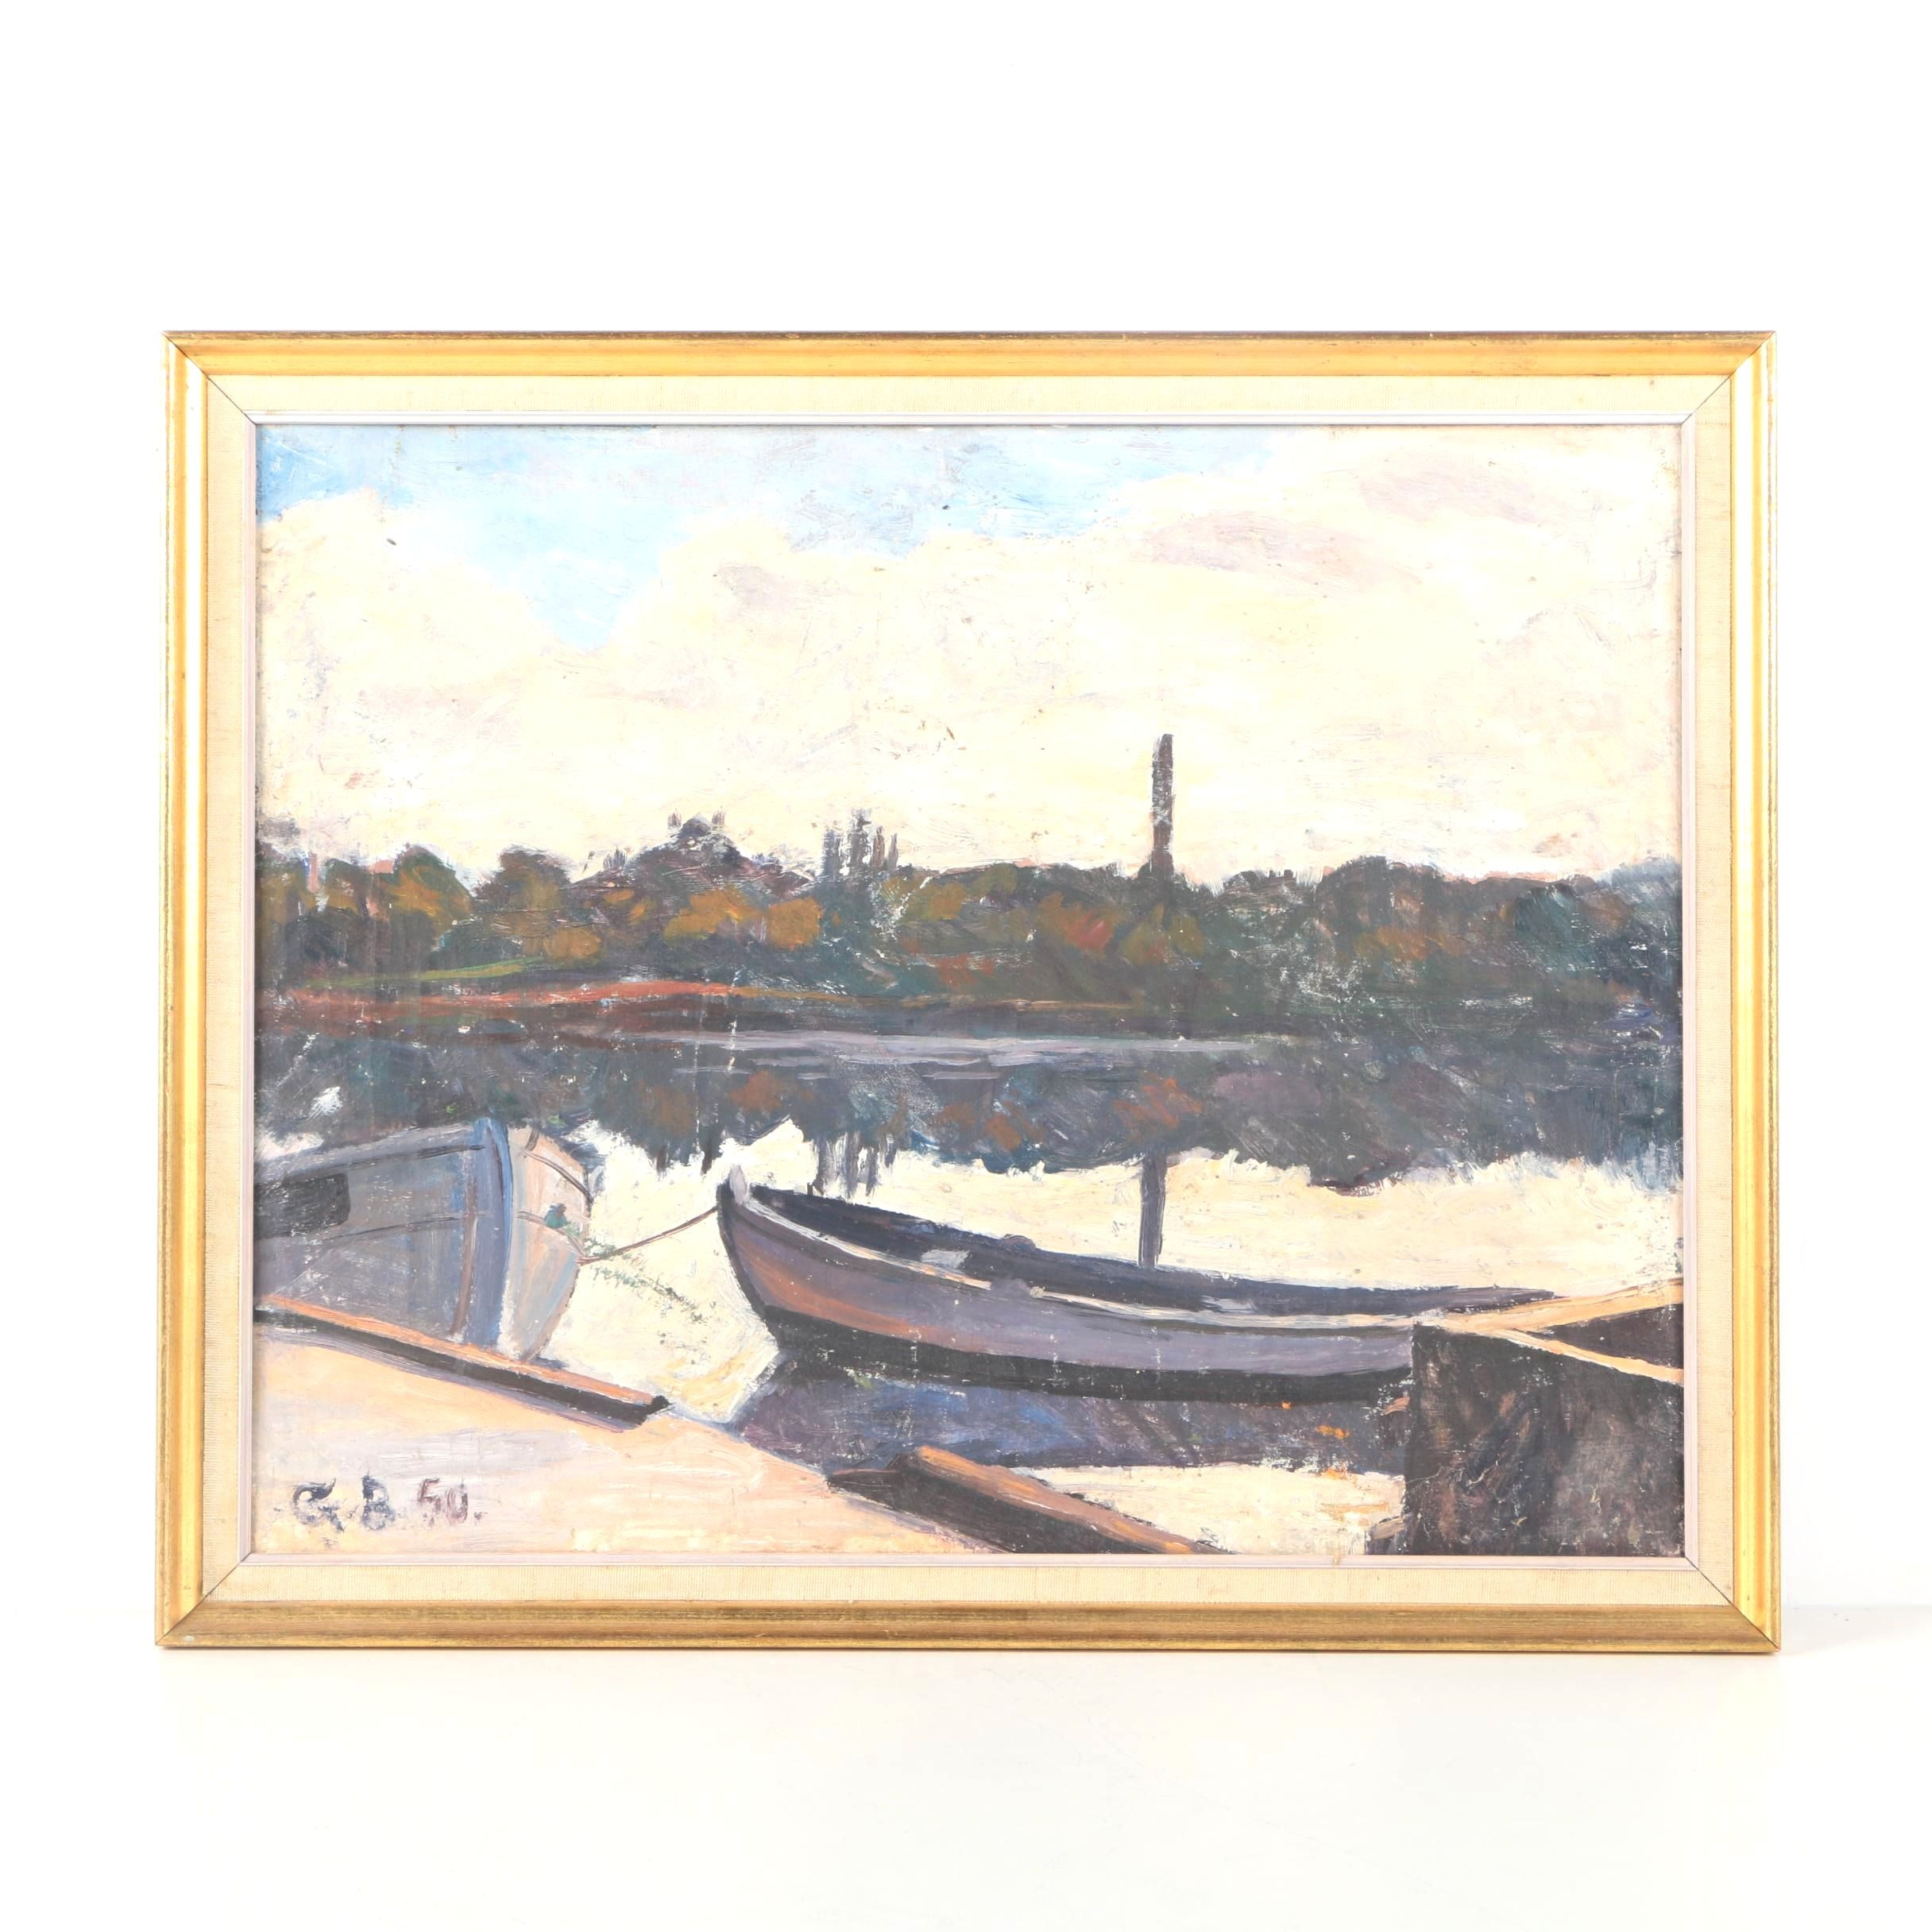 1950 G. B. Oil Painting Of Boat Dock